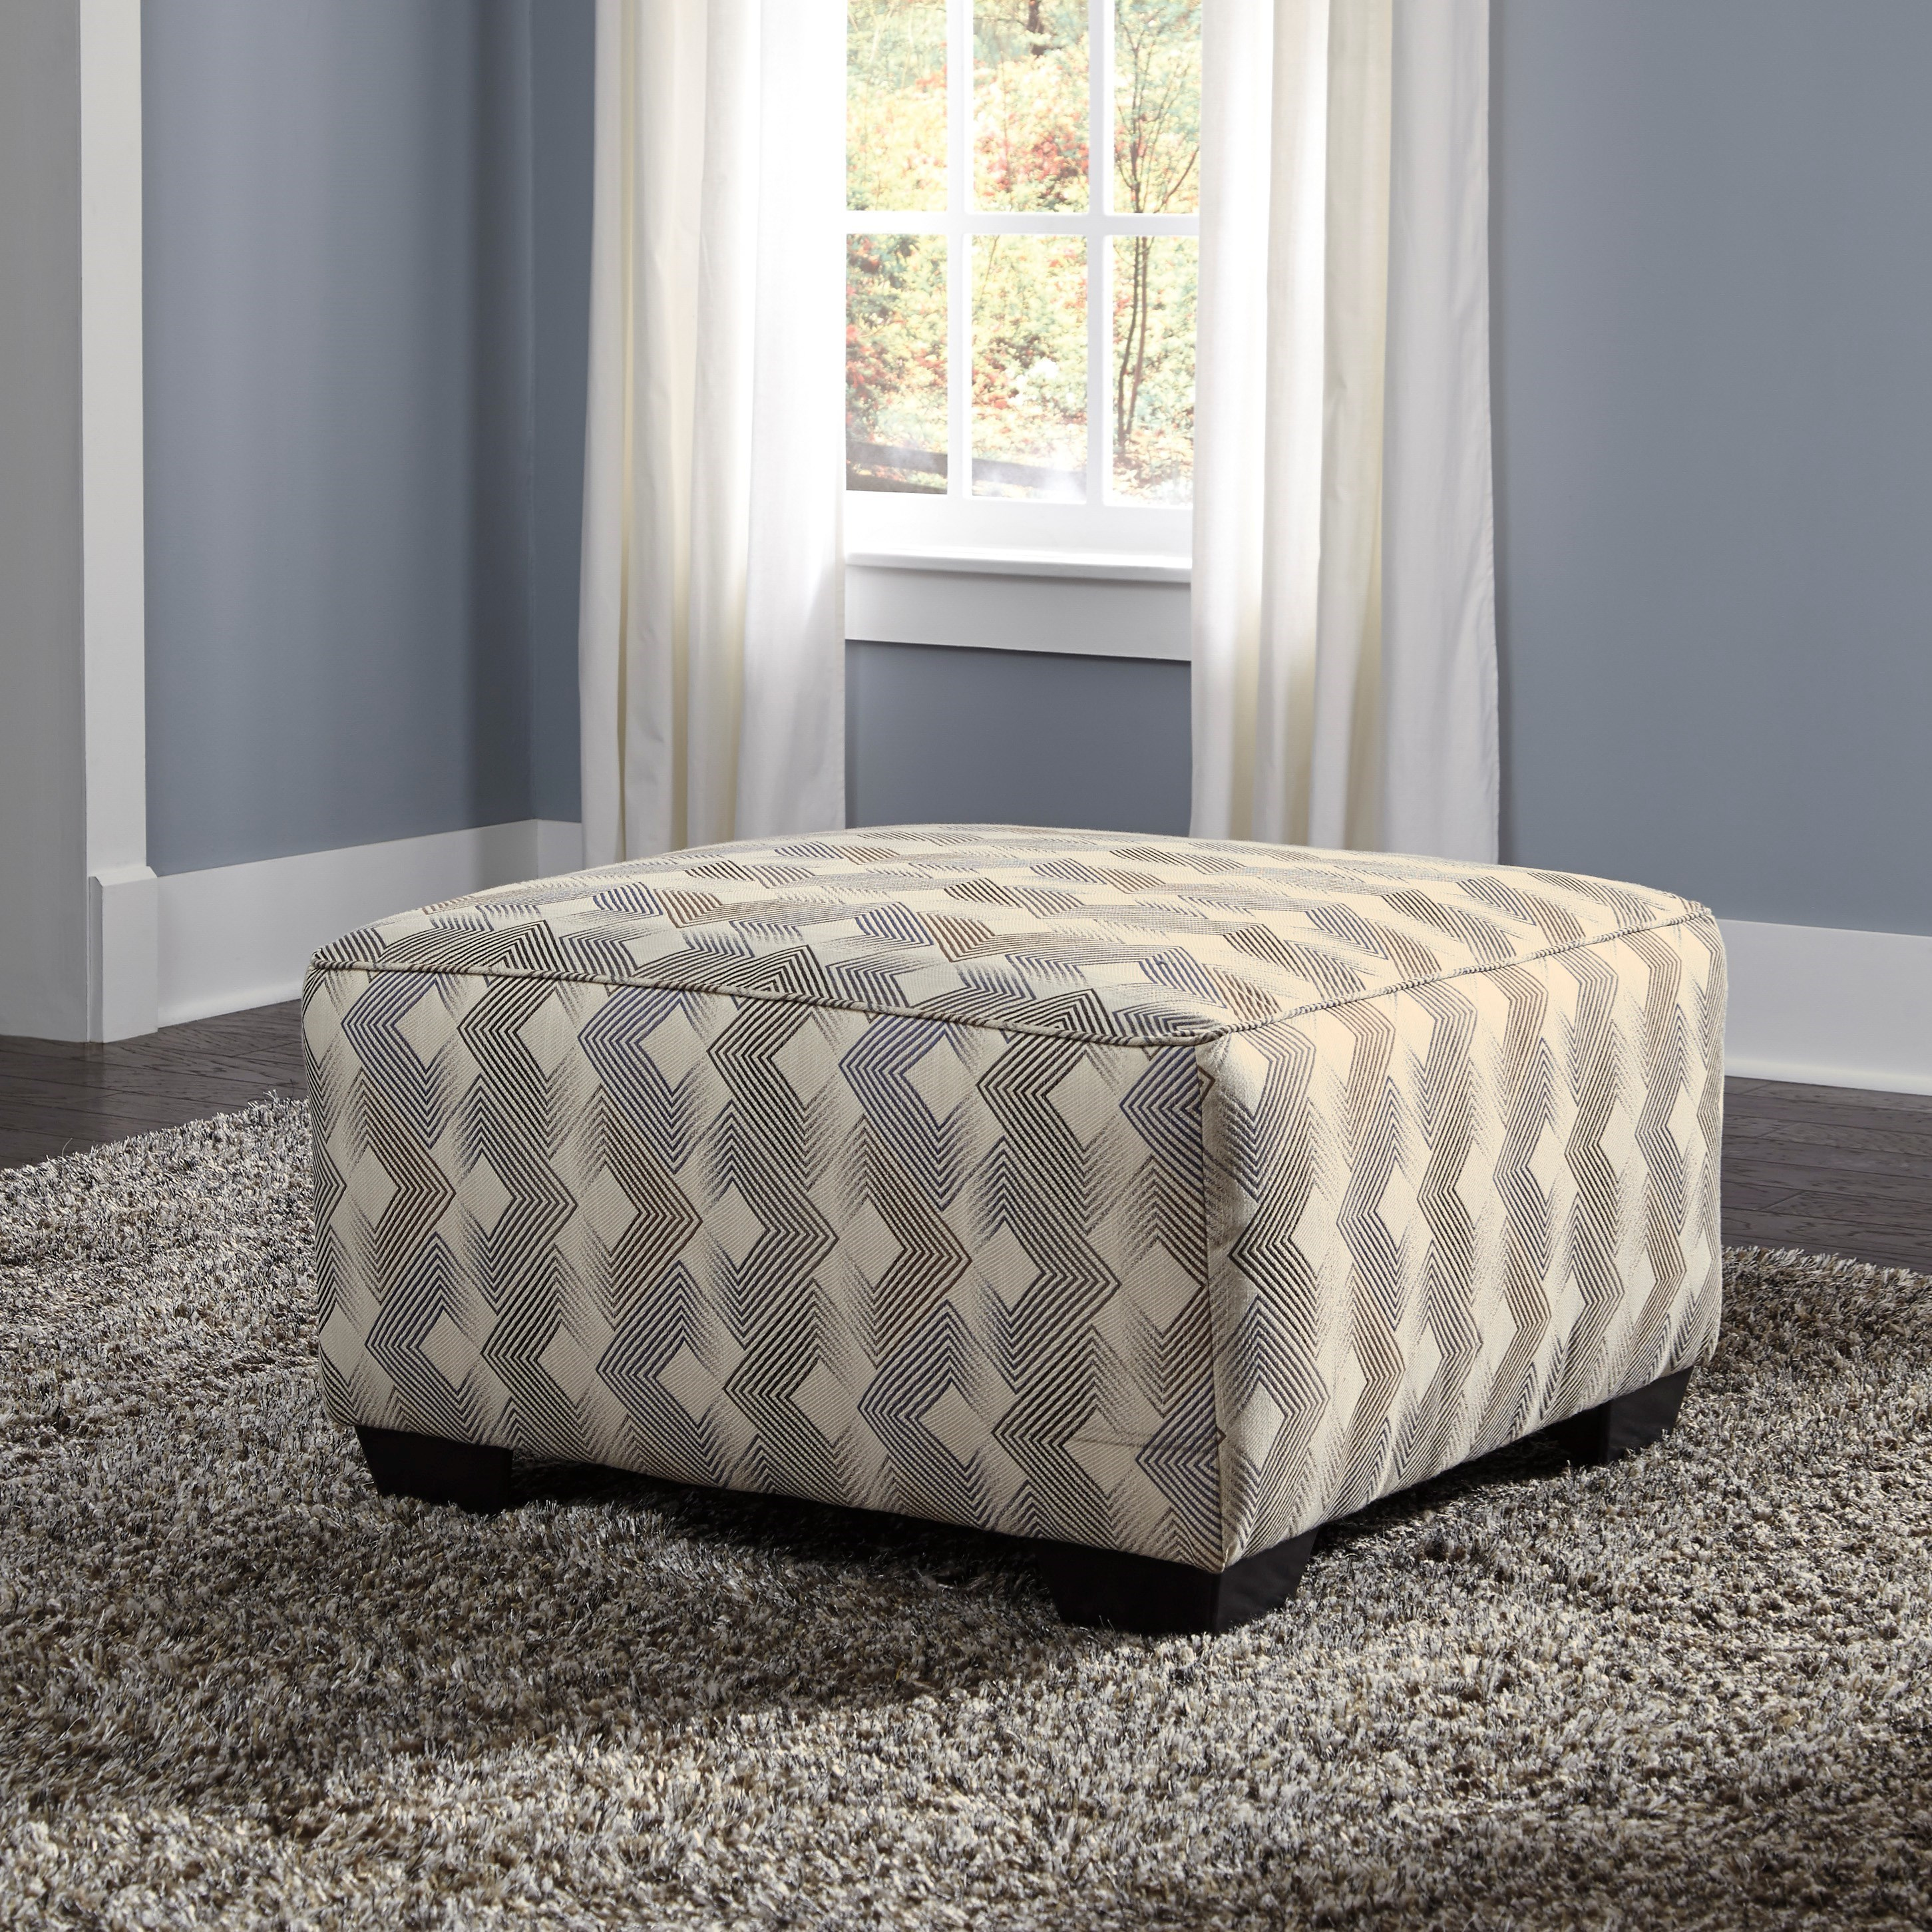 Ashley Furniture Current Sales Ad: Signature Design By Ashley Eltmann Oversized Accent